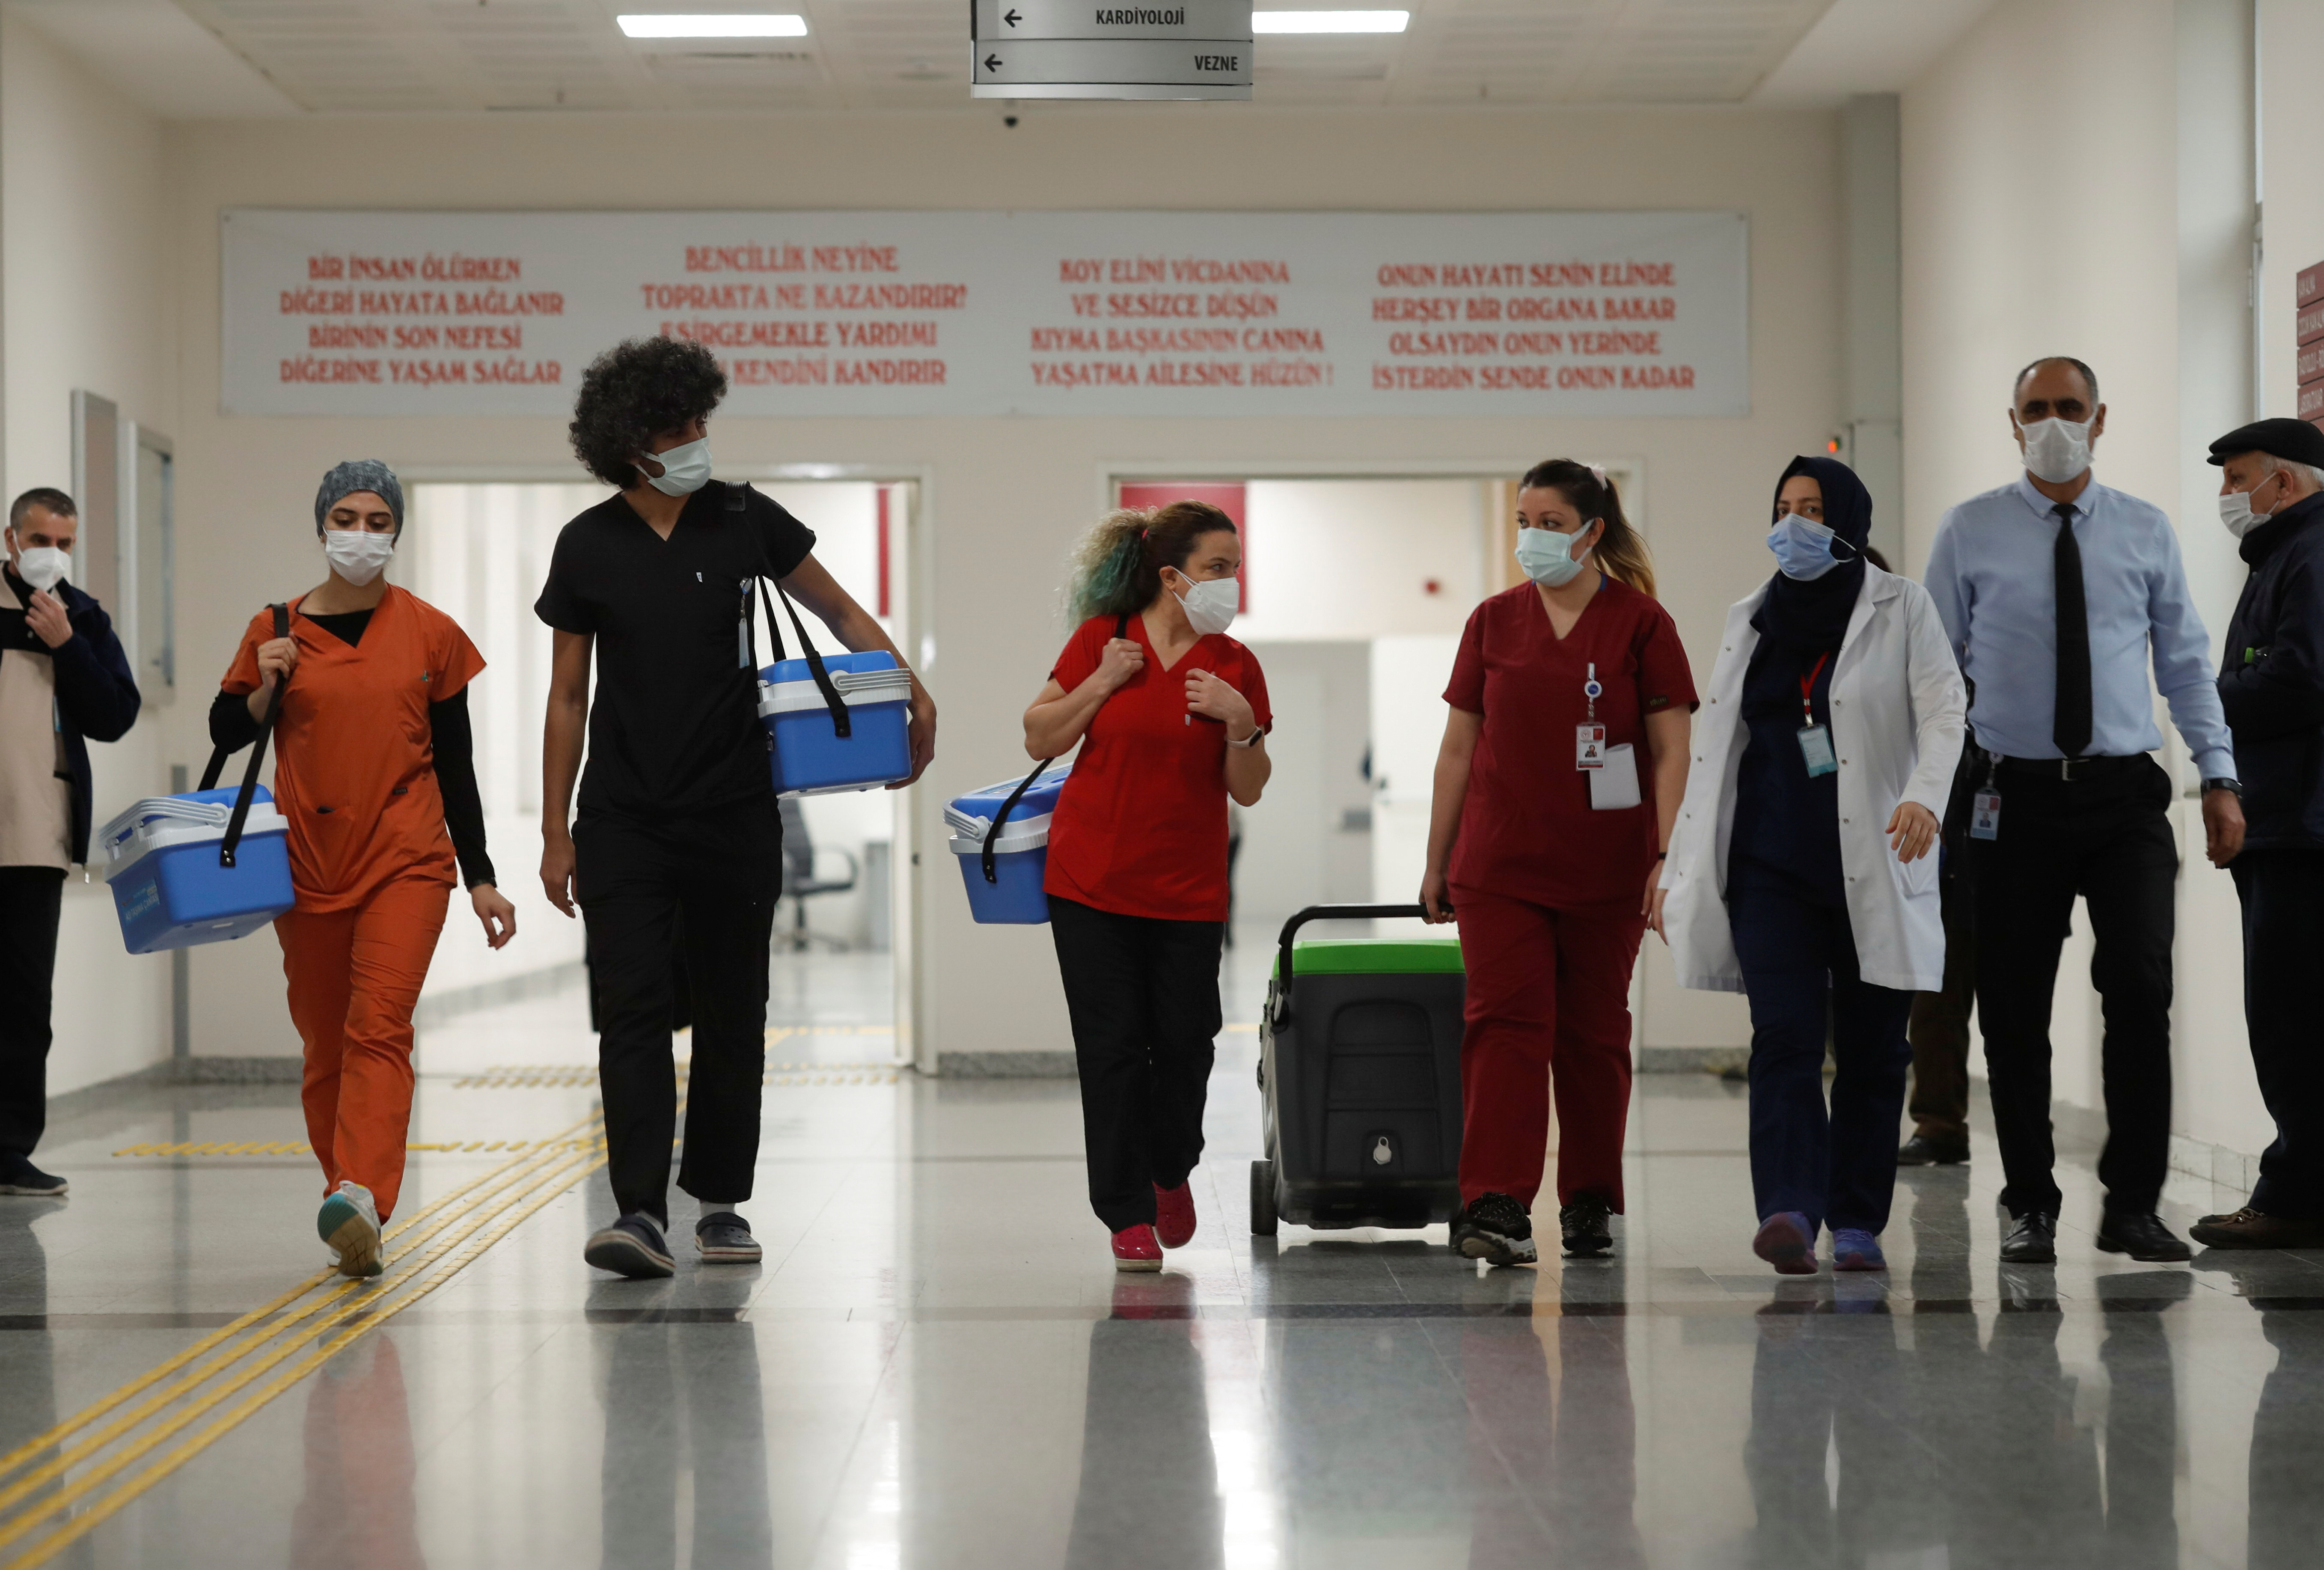 Health workers carry Sinovac's CoronaVac COVID-19 vaccine boxes at Sancaktepe Sehit Dr. Ilhan Varank Training and Research Hospital, in Istanbul, Turkey January 14, 2021. REUTERS/Murad Sezer